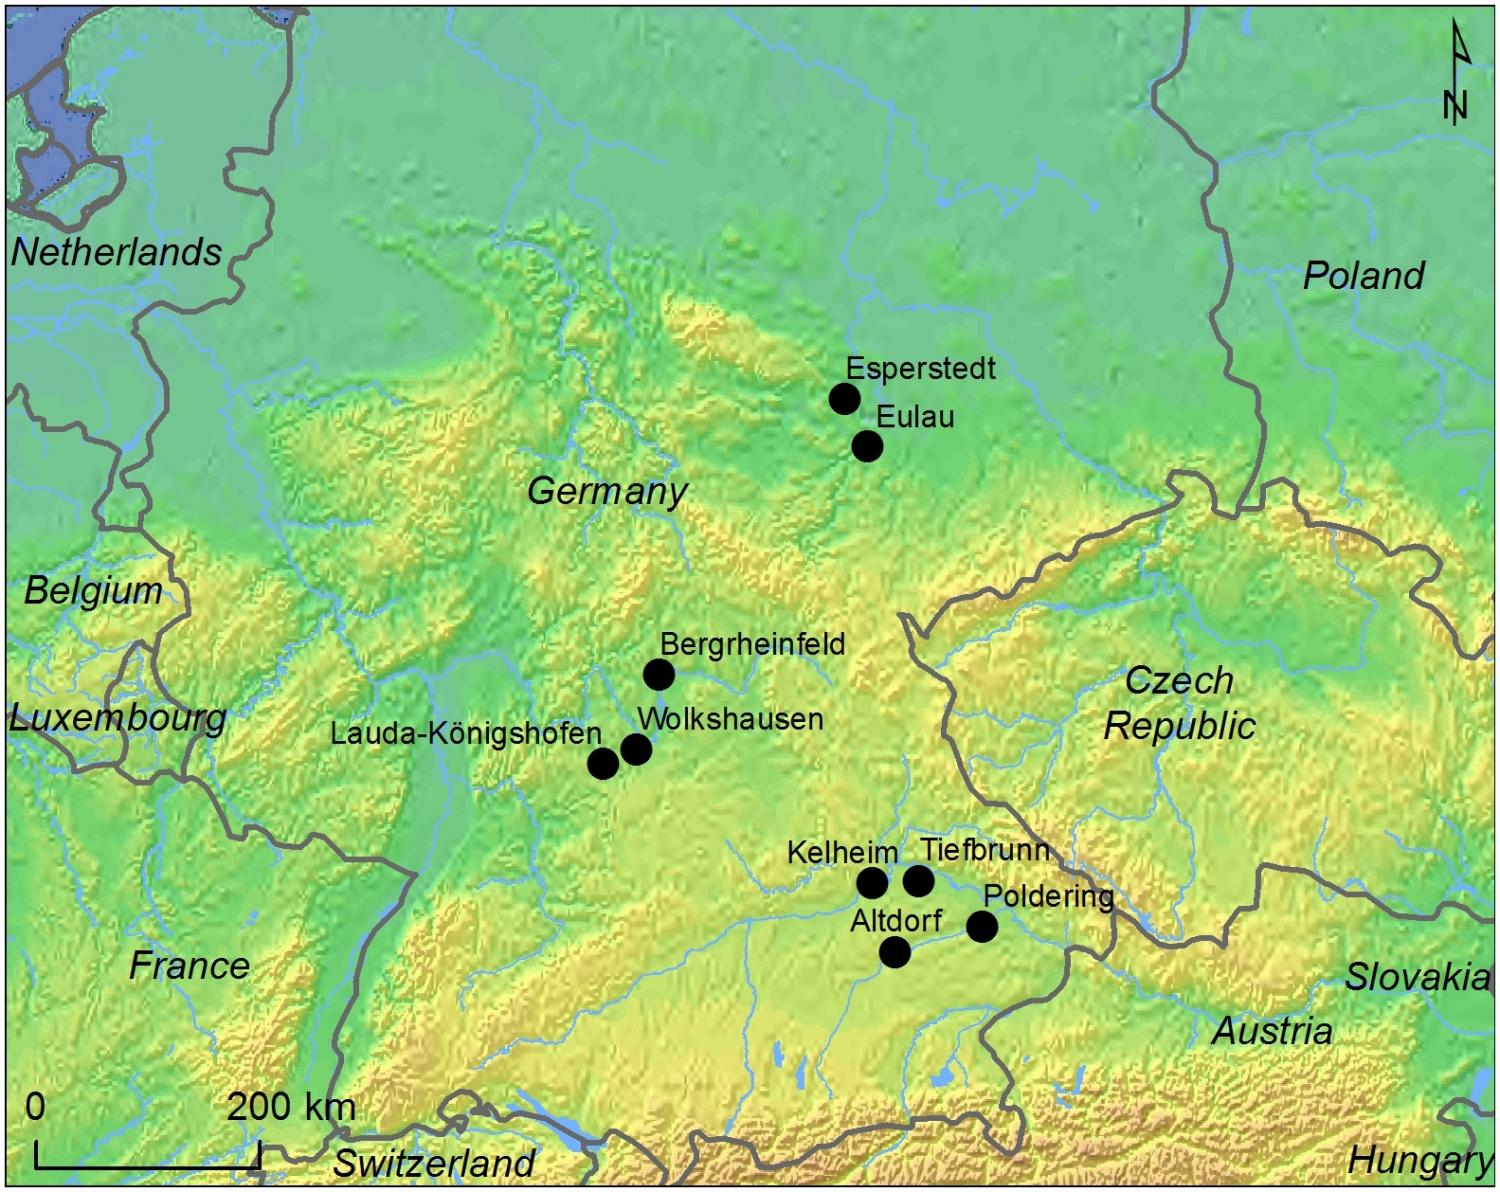 location of sampled sites and other cw sites mentioned in the text credit map by k g sjgren using public domain data